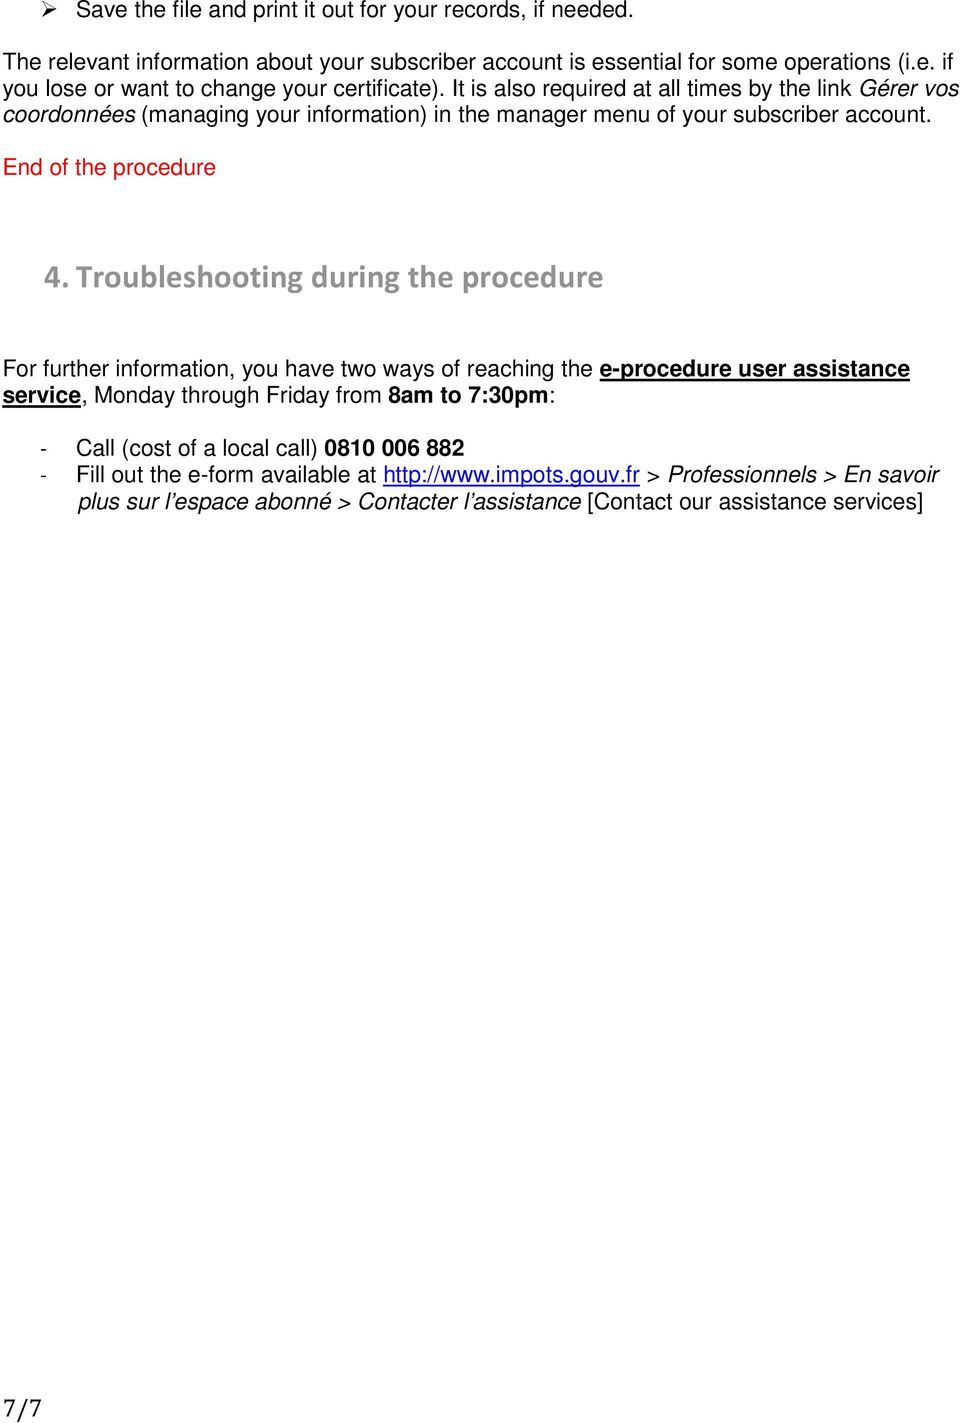 Troubleshooting during the procedure For further information, you have two ways of reaching the e-procedure user assistance service, Monday through Friday from 8am to 7:30pm: - Call (cost of